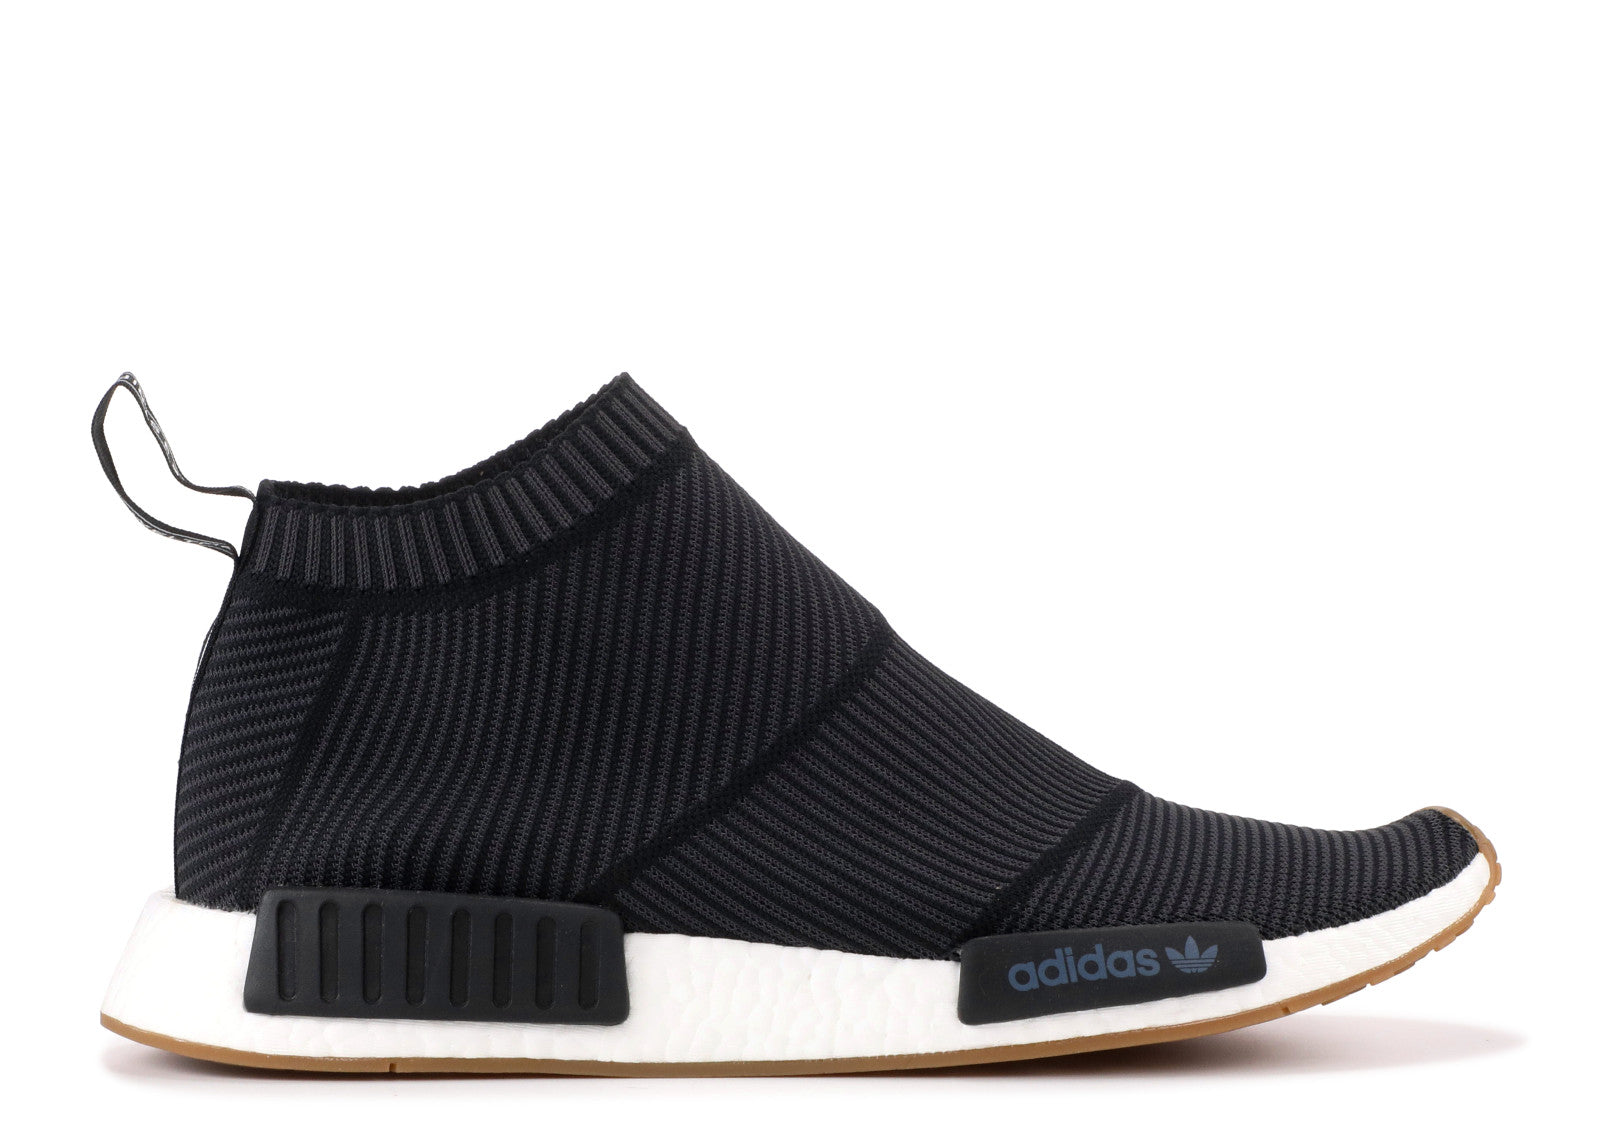 Adidas NMD CS1 City Sock Primeknit Gum Pack 'Black'